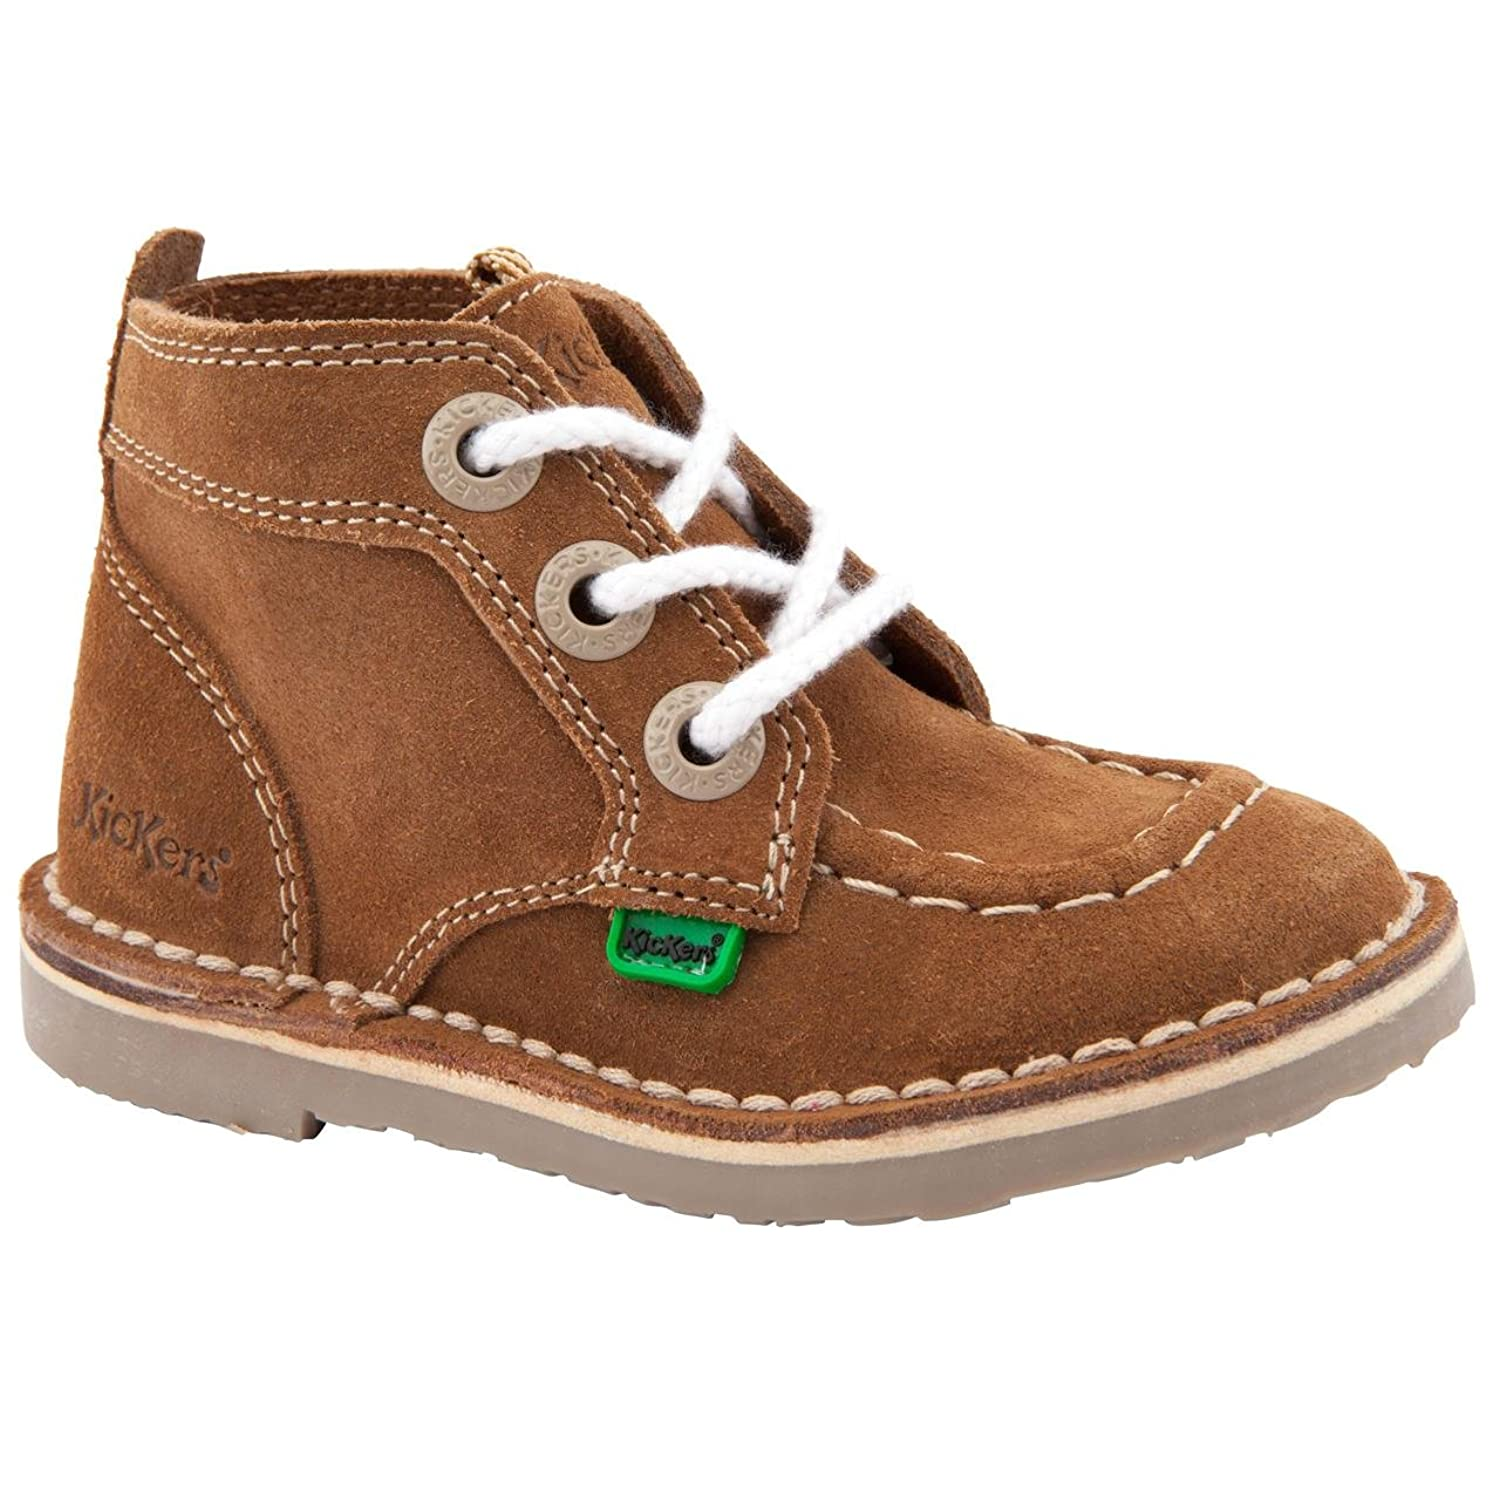 da6c7176ab7572 Pre-School Boys Kickers Adler Legendry Tan Ankle Boots Size 10:  Amazon.co.uk: Shoes & Bags